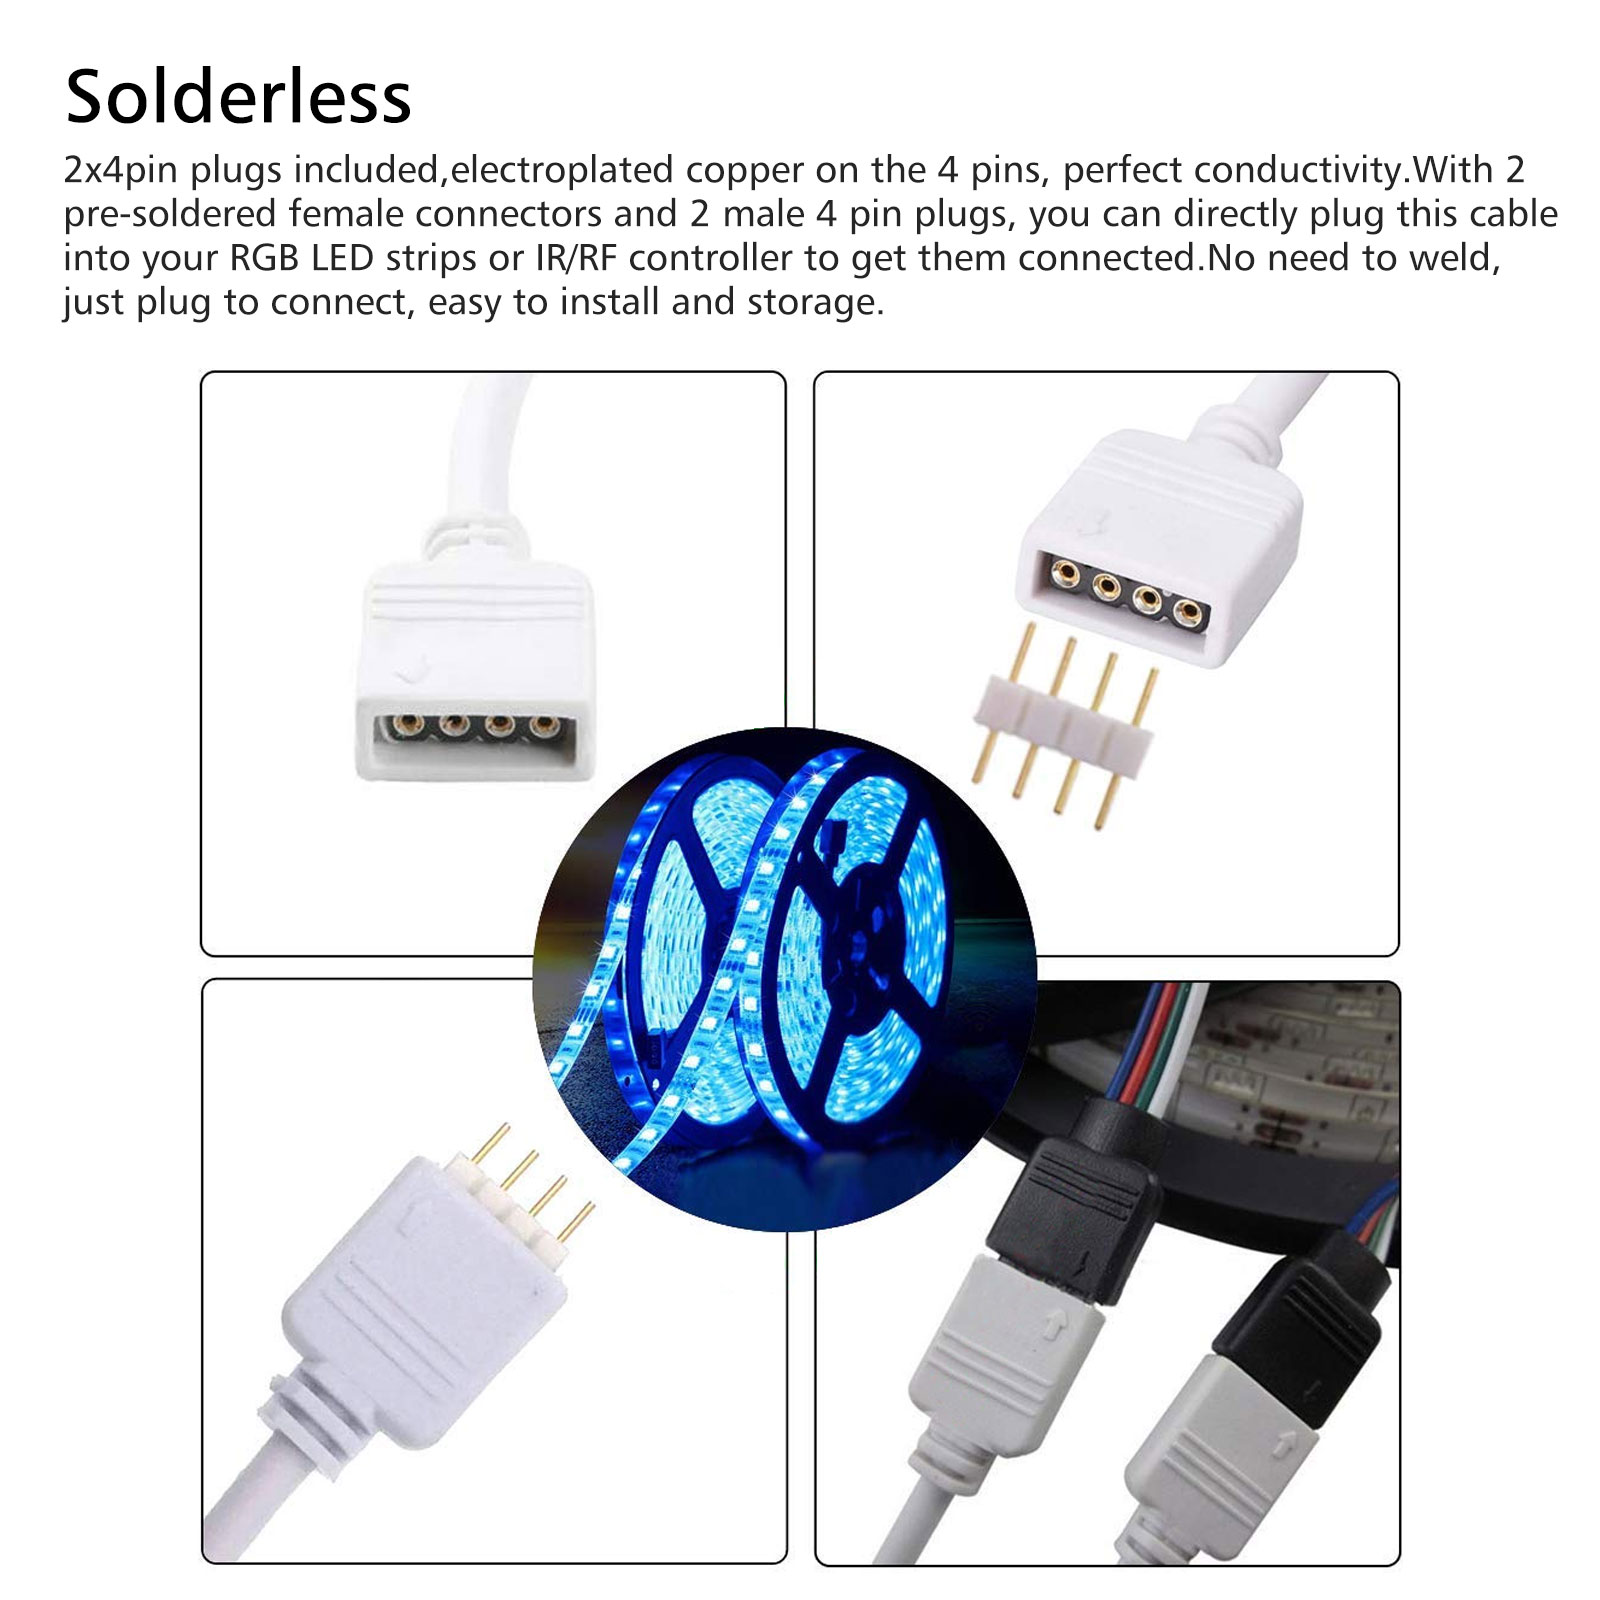 4Pin-Extension-Wire-Connector-For-SMD-LED-Strip-Light-RGB-5050-3528-Cable-Cord thumbnail 6